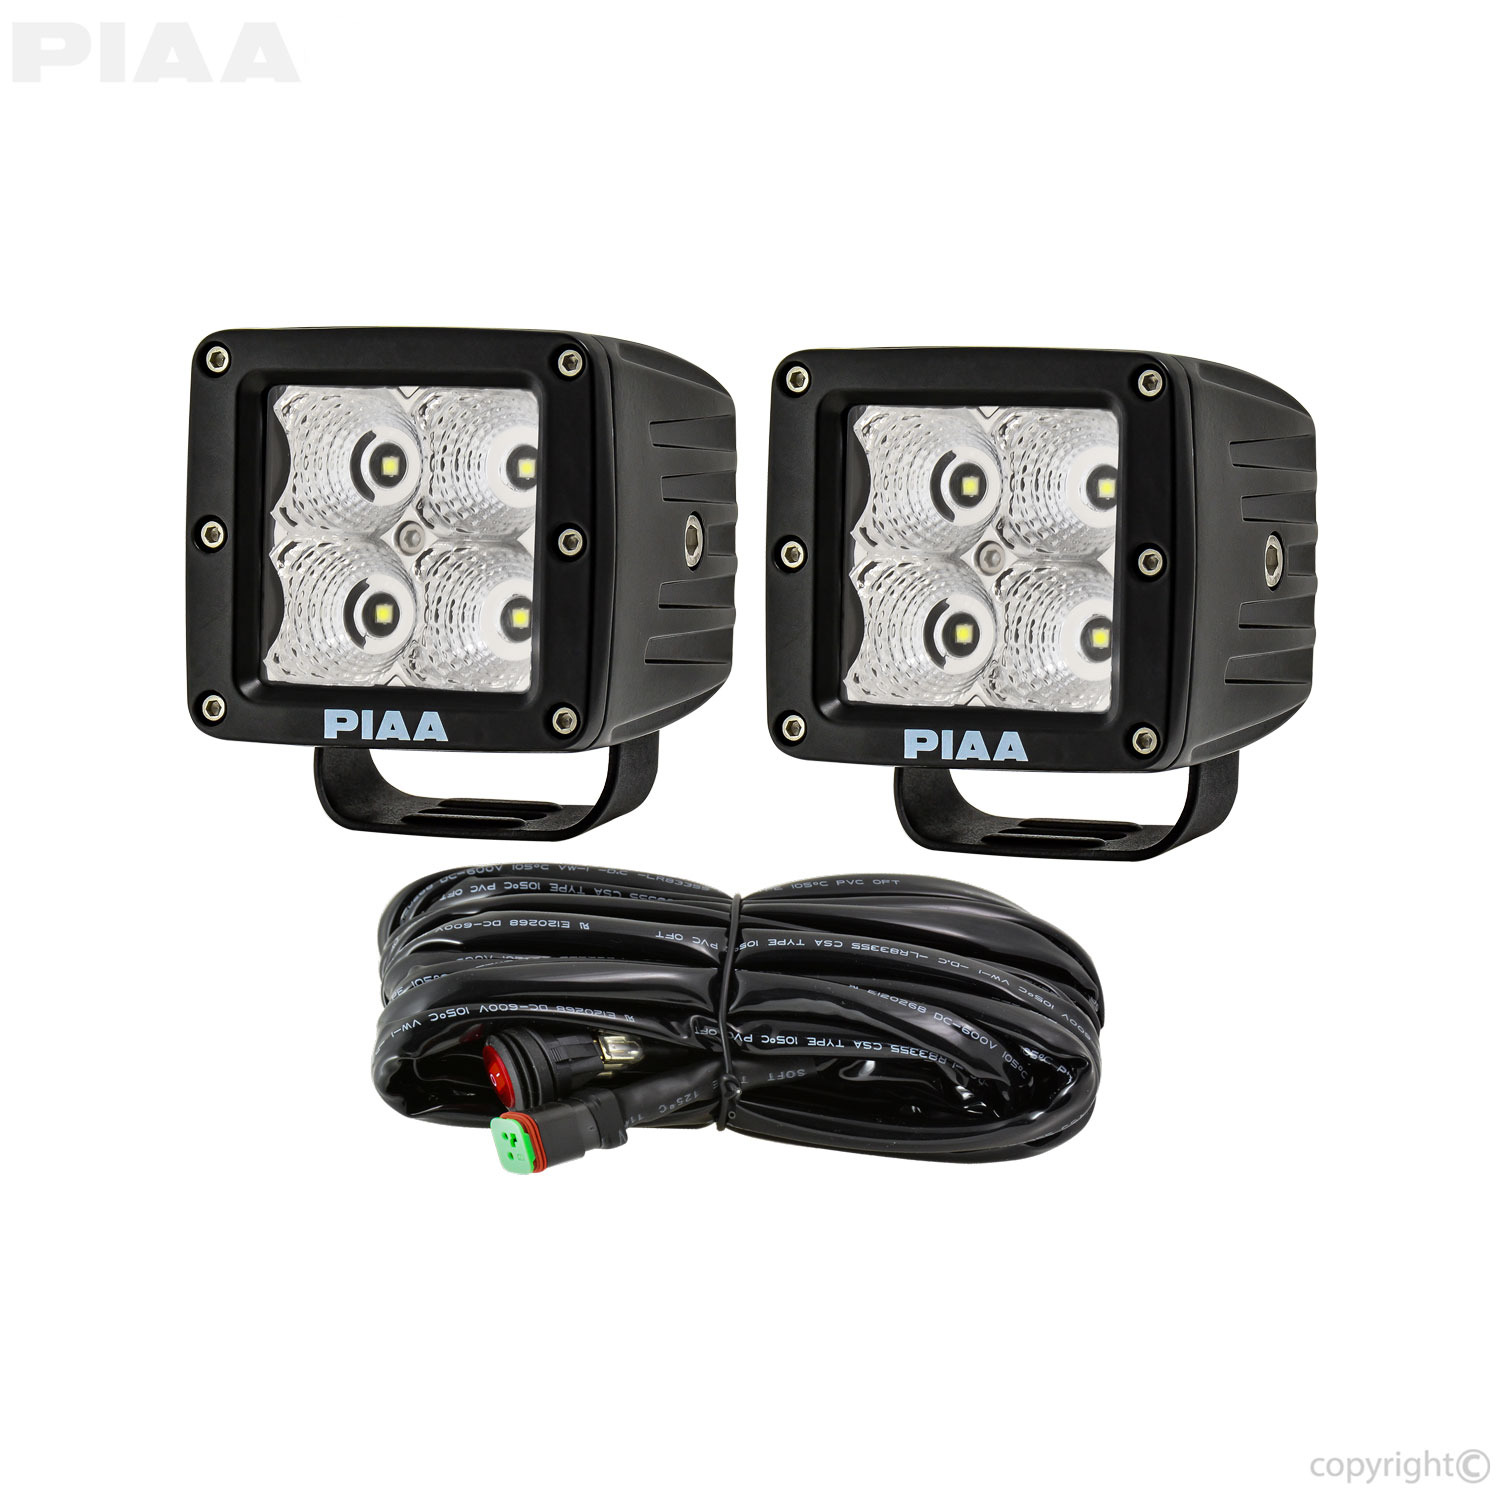 piaa 26 06303 quad contents hr?lr=t&bw=1000&w=1000&bh=1000&h=1000 piaa fog light wiring harness piaa ion crystal coating technology piaa fog light wiring harness at webbmarketing.co